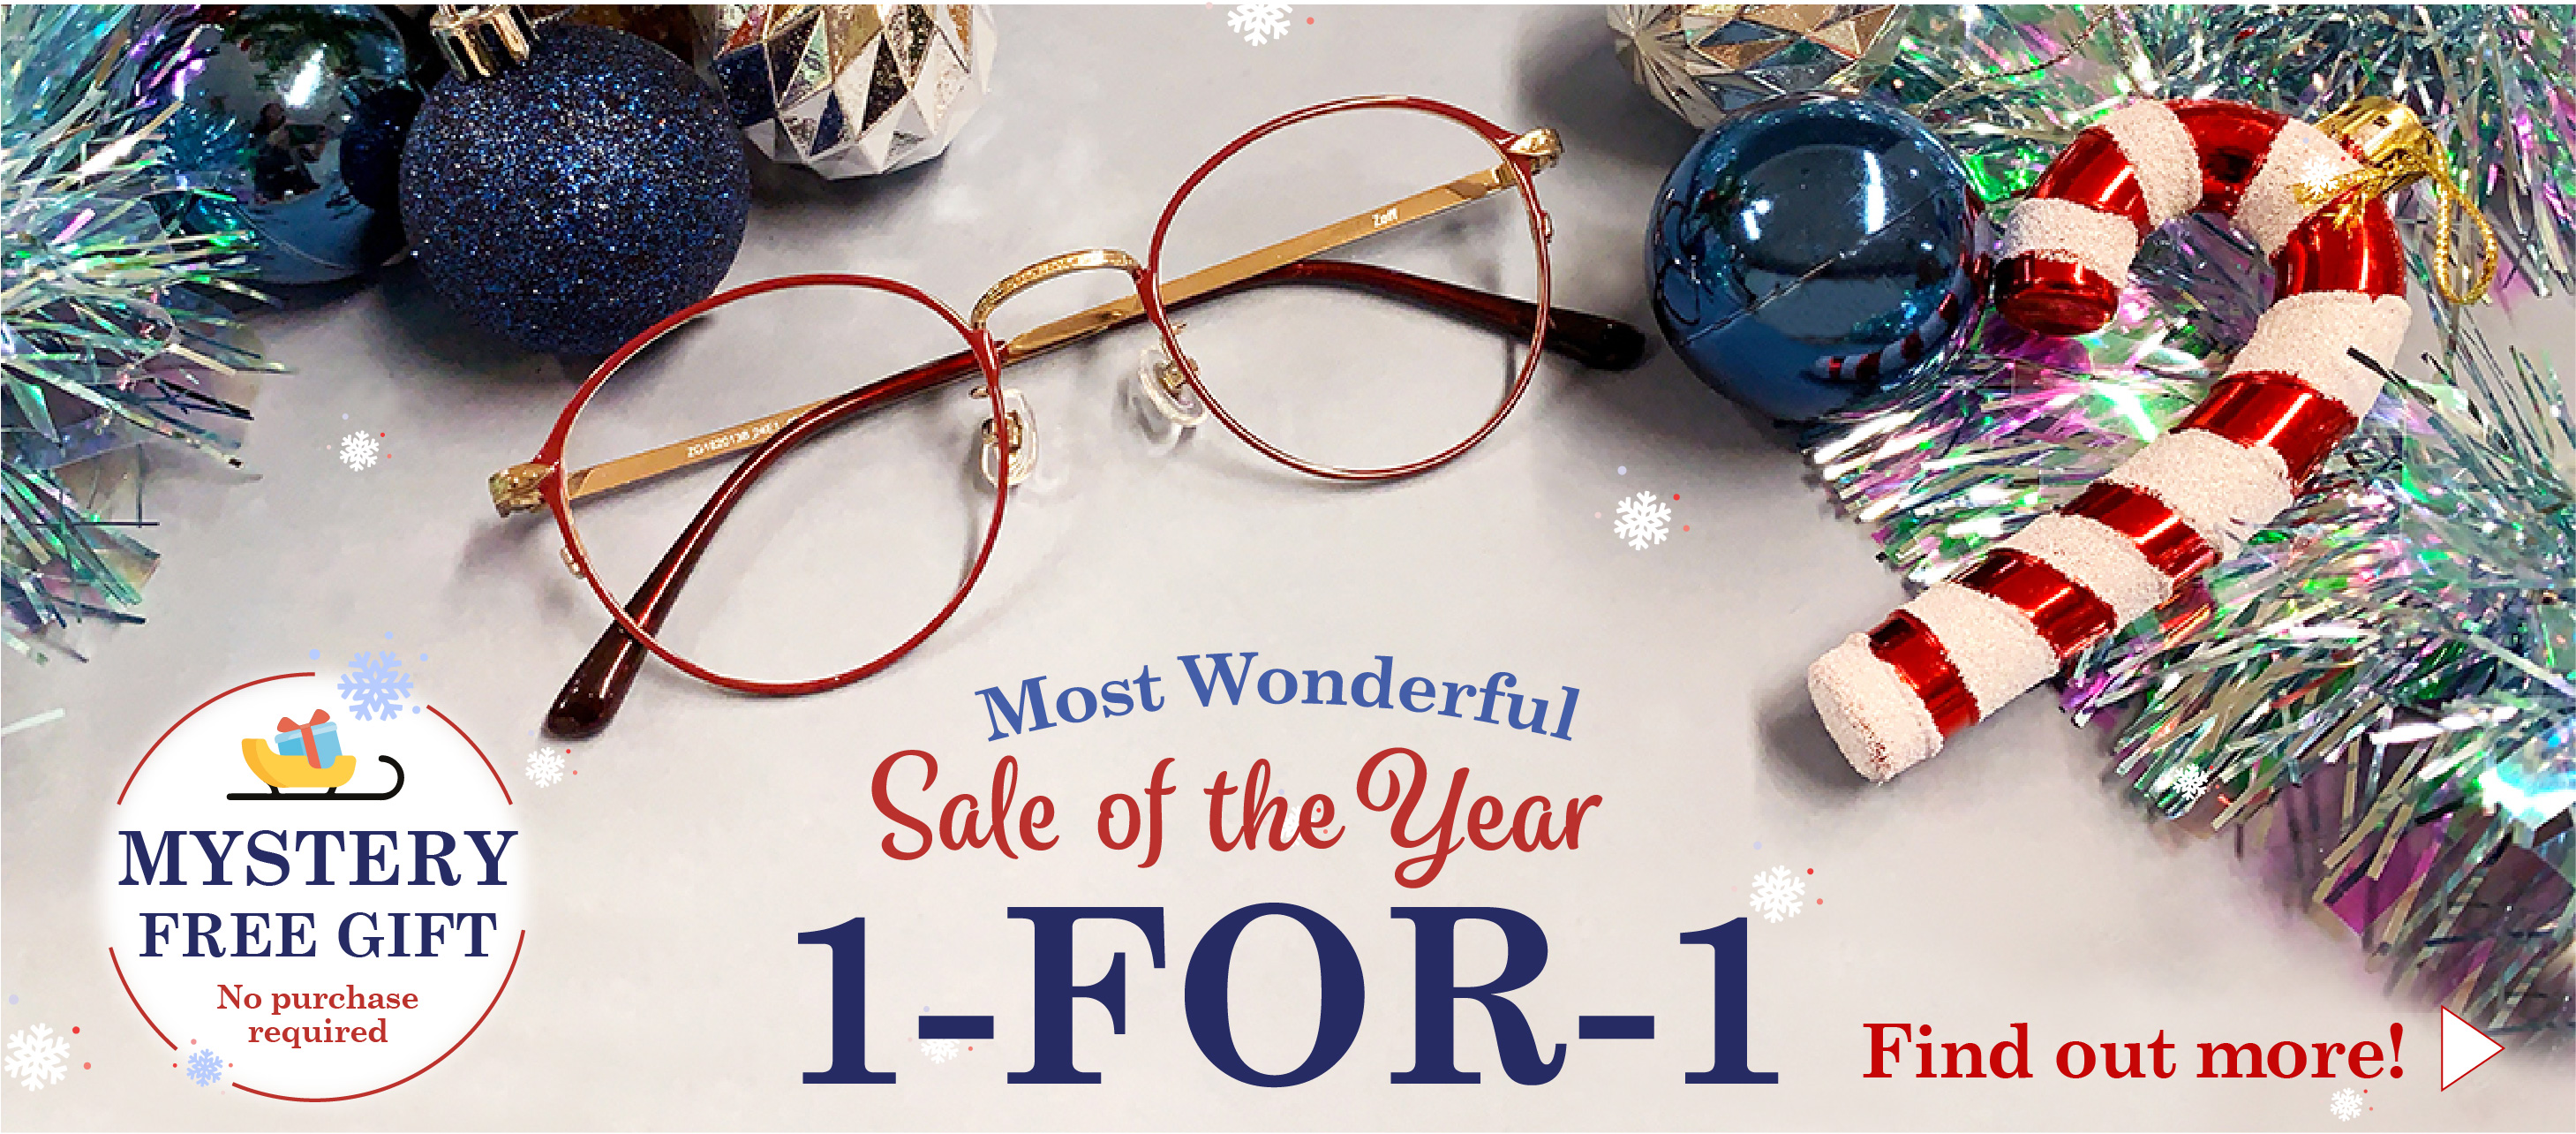 Zoff Most Wonderful Christmas Sale 2019 1 For 1 with Free Gift In Store